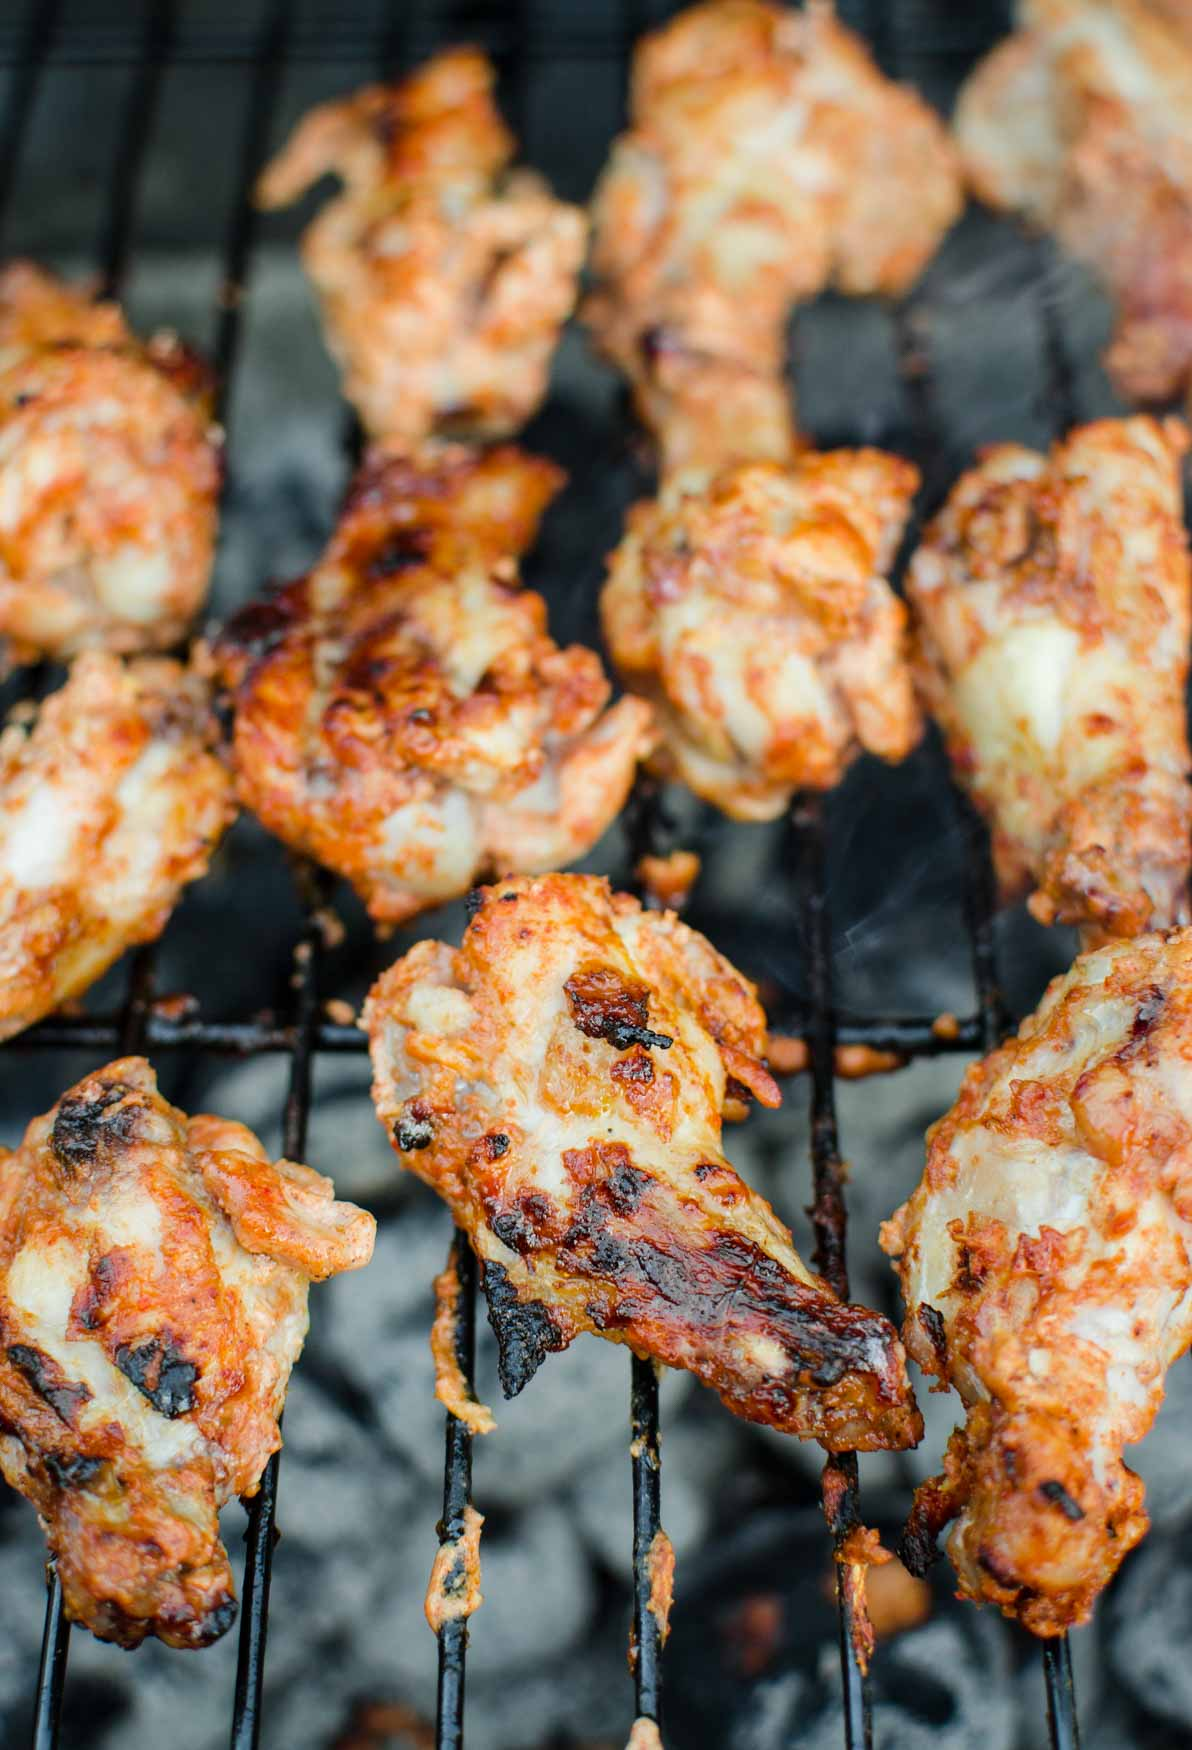 These grilled tandoori chicken wings are packed with amazing flavors that will want you to make them again and again.